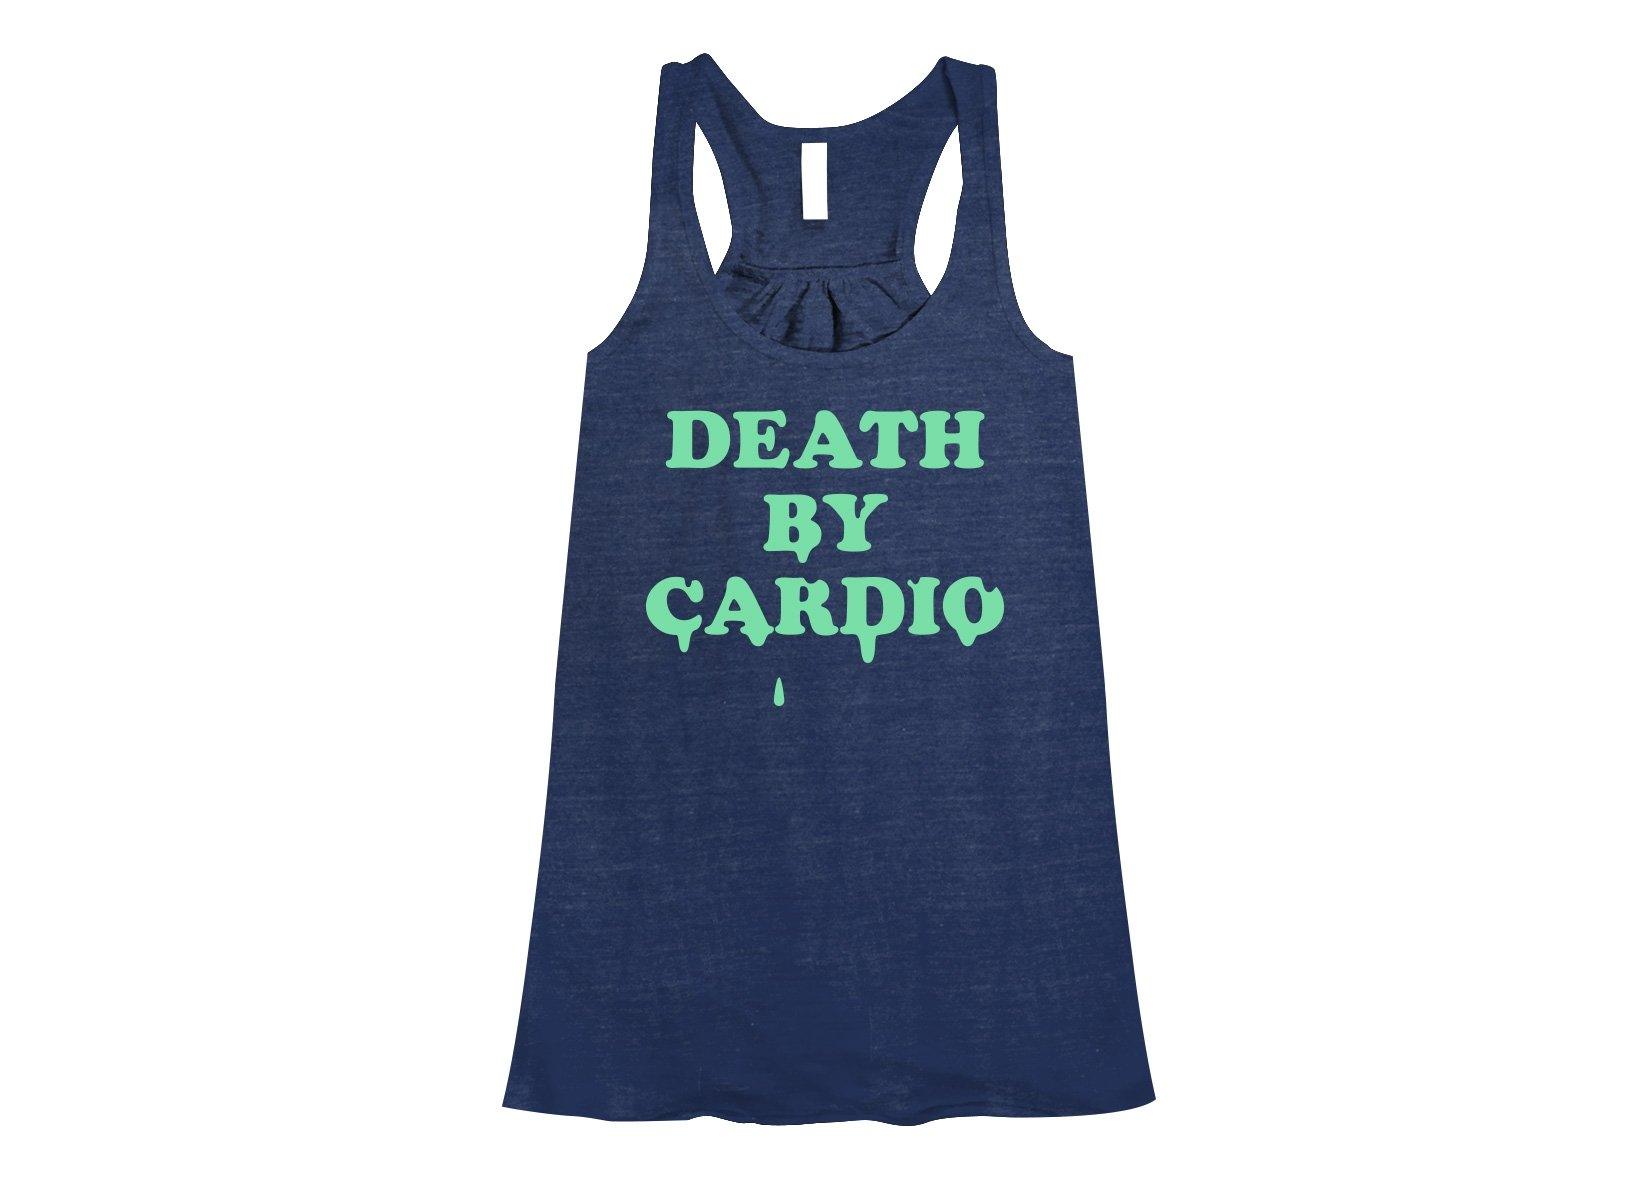 Death By Cardio on Womens Tanks T-Shirt